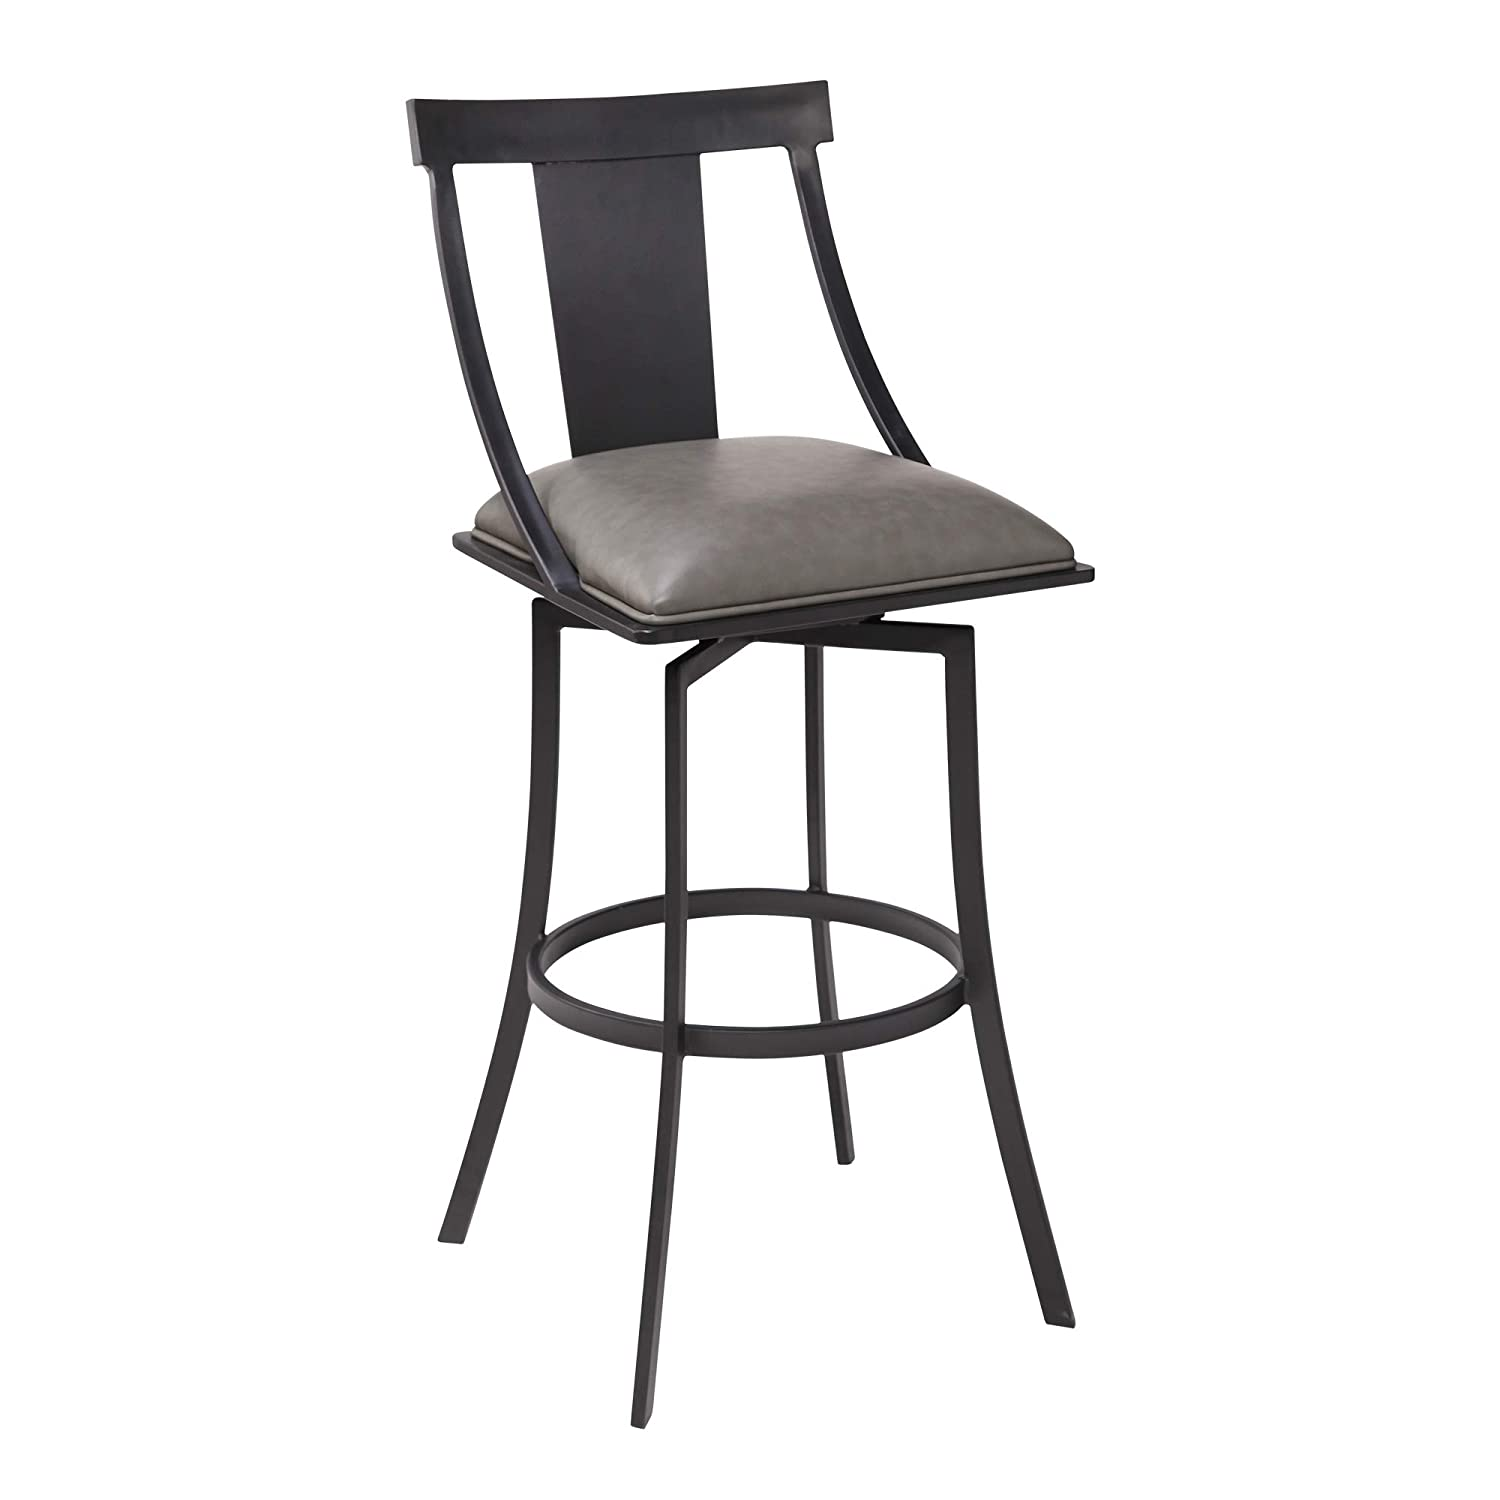 Enjoyable Amazon Com Armen Living Brisbane Faux Leather 26 Bar Stool Andrewgaddart Wooden Chair Designs For Living Room Andrewgaddartcom